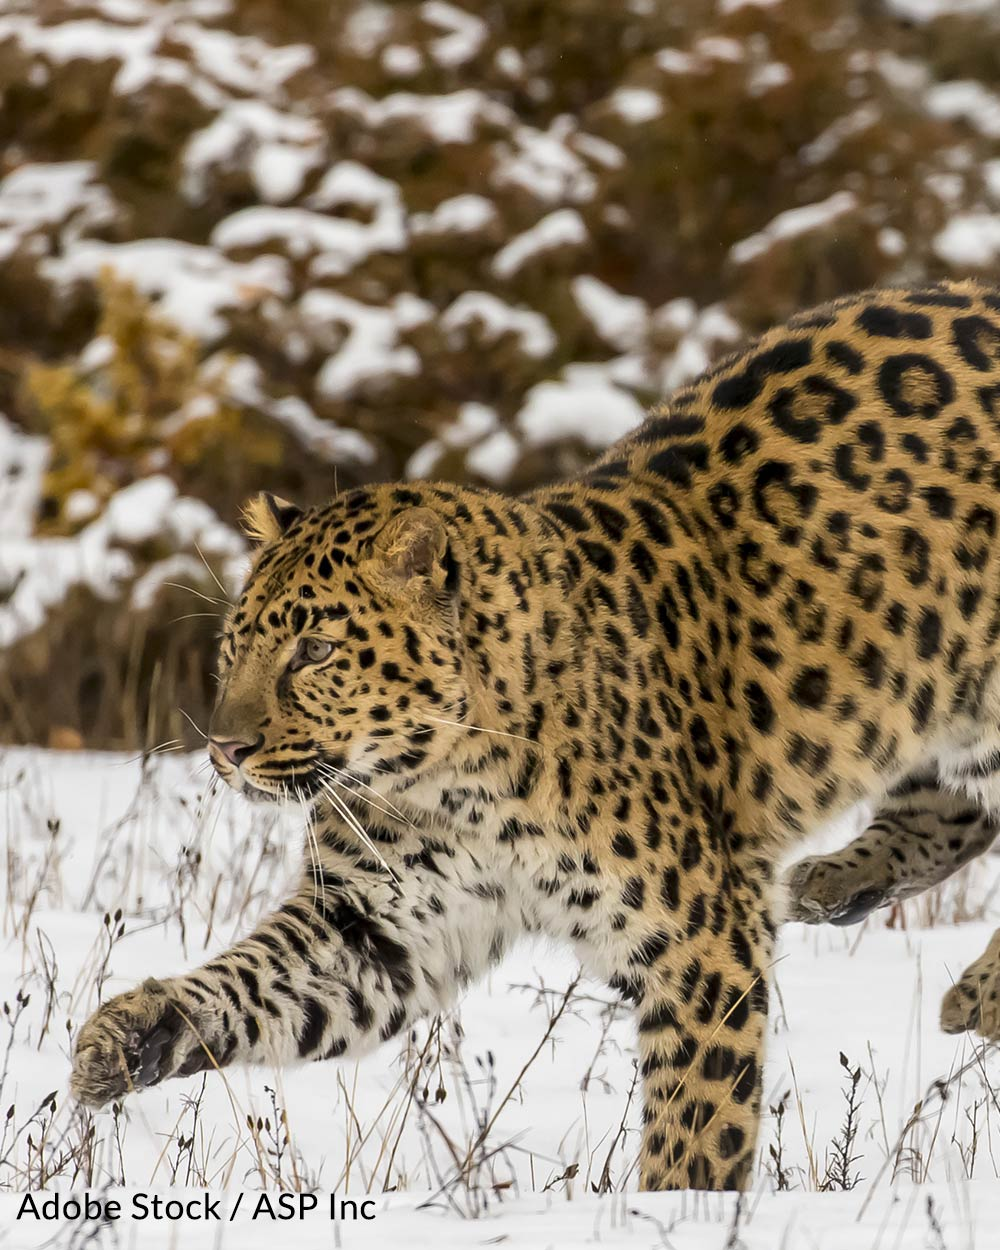 Amur leopards are targeted by poachers and losing their natural habitat at an alarming rate.